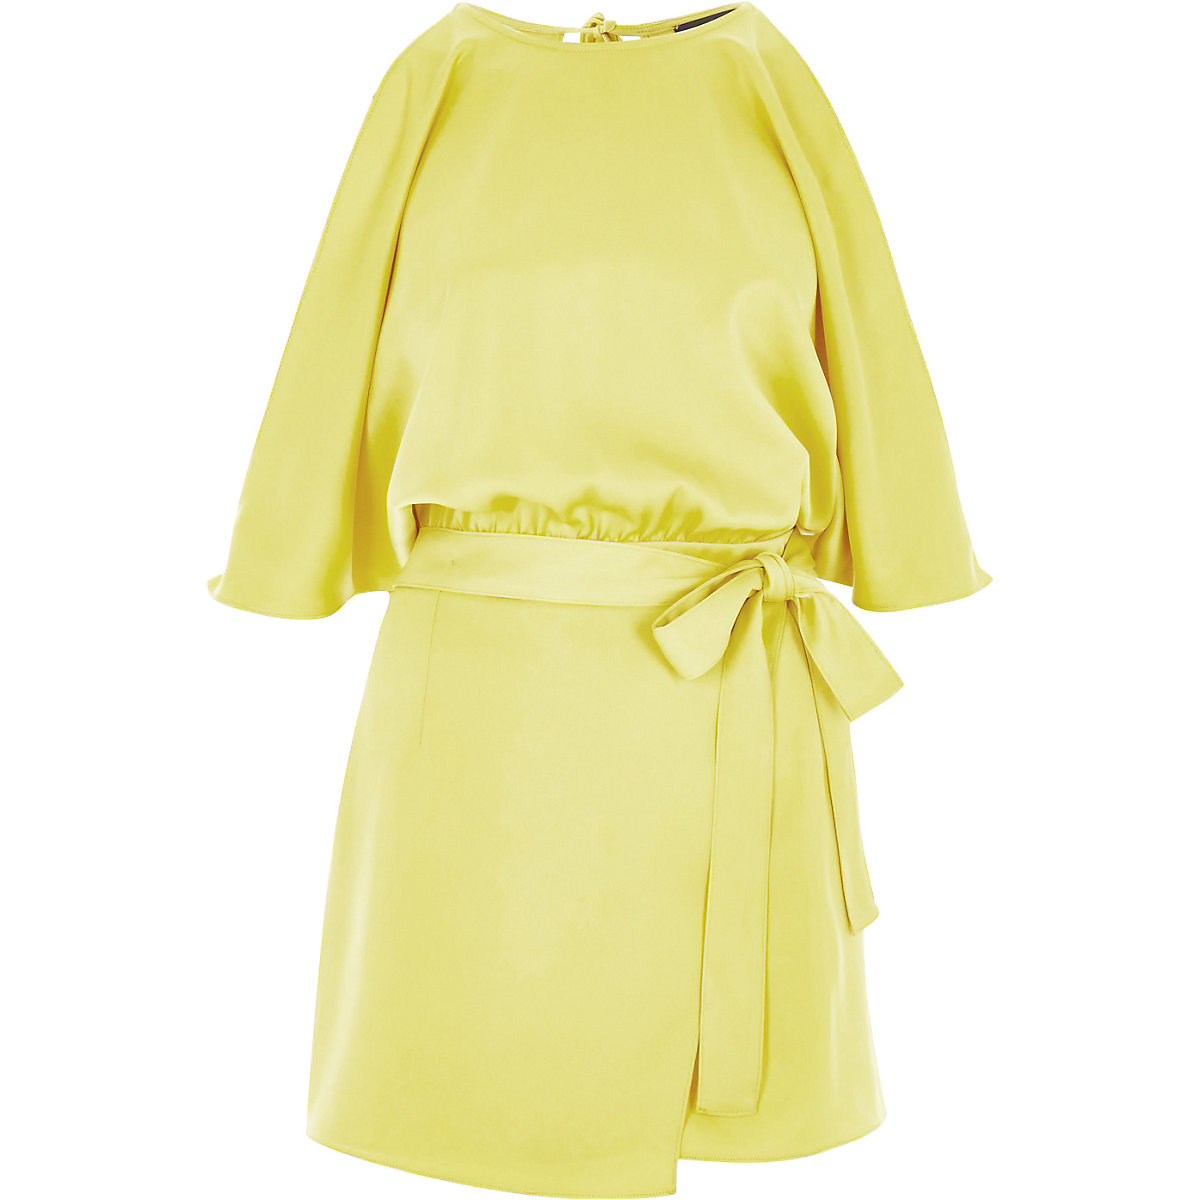 e75173aafc Yellow cold shoulder wrap skort playsuit - Wedding Guest Dresses   Outfits  - women